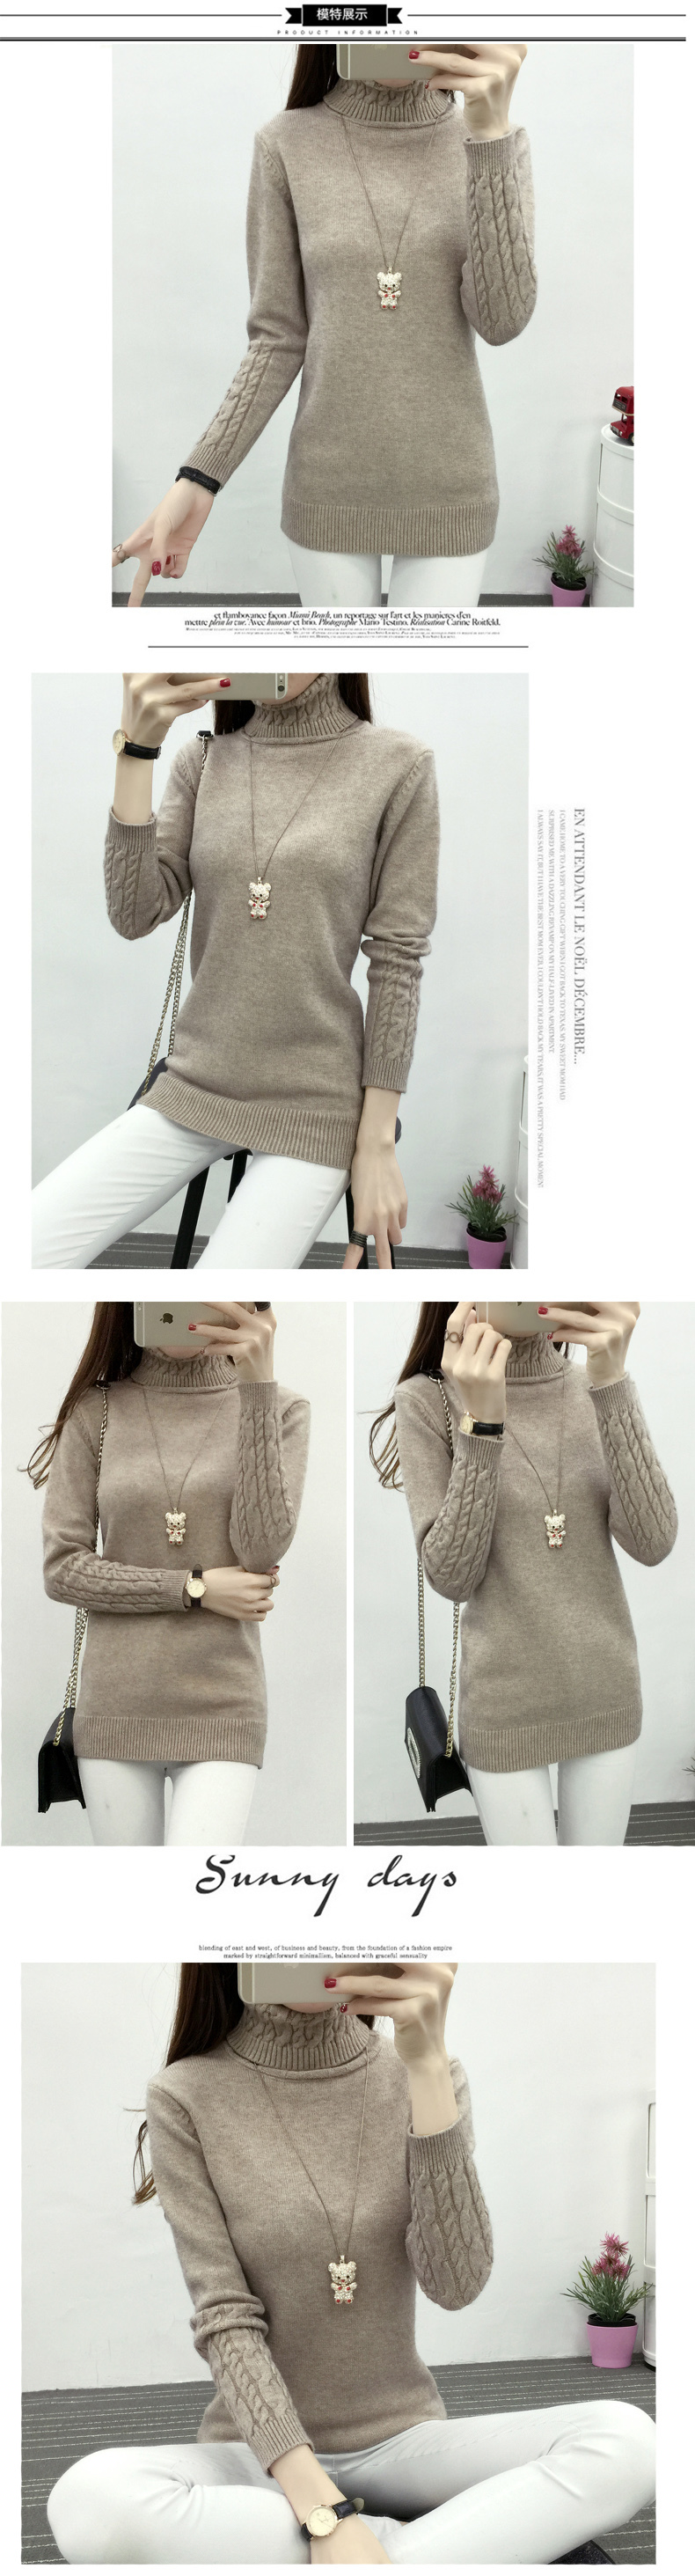 Thicken Warm Knitting Sweaters And Pullovers For Women 17 Winter Casual Elastic Turtleneck Knitwear Female Jumper Tricot Tops 6